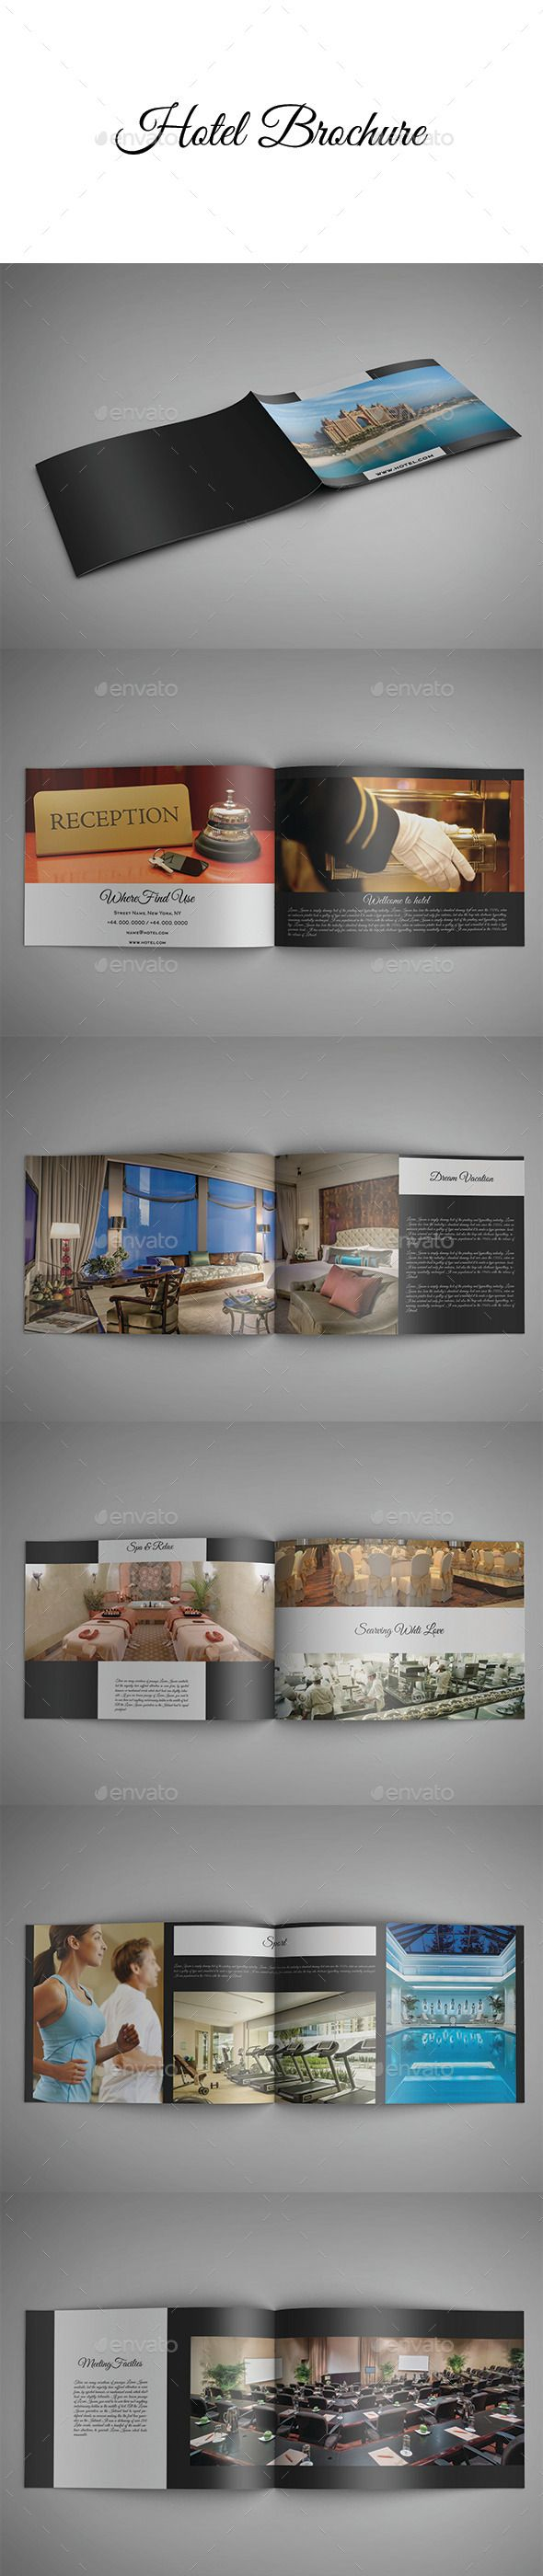 Hotel Brochure | Hotel brochure, Brochures and Brochure template